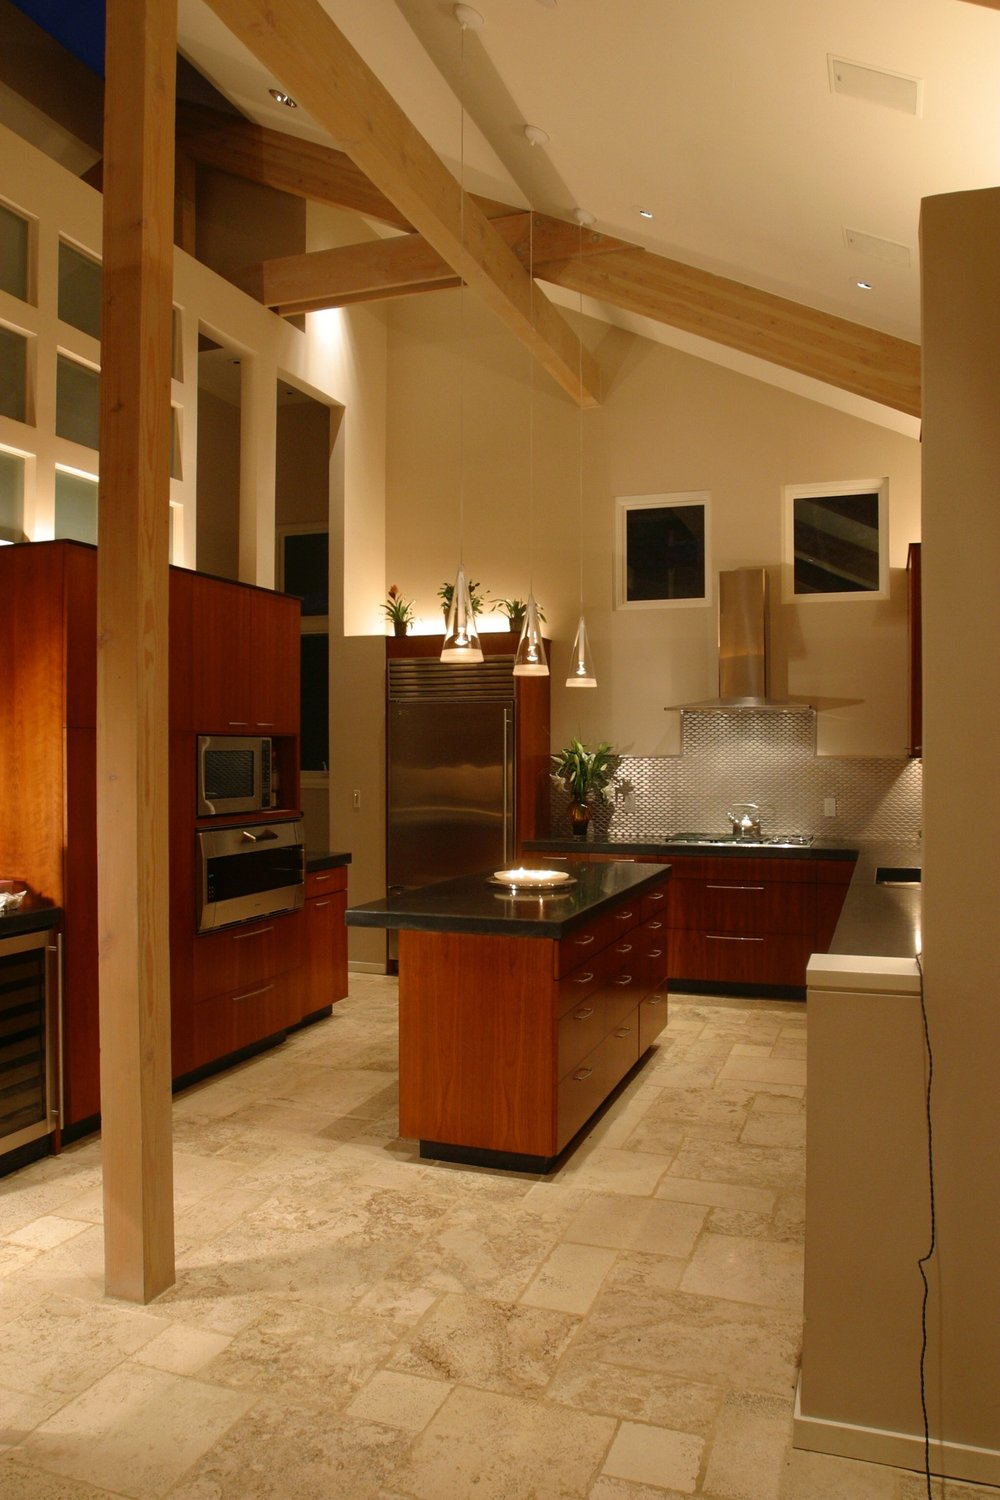 Mill valley kitchen.JPG